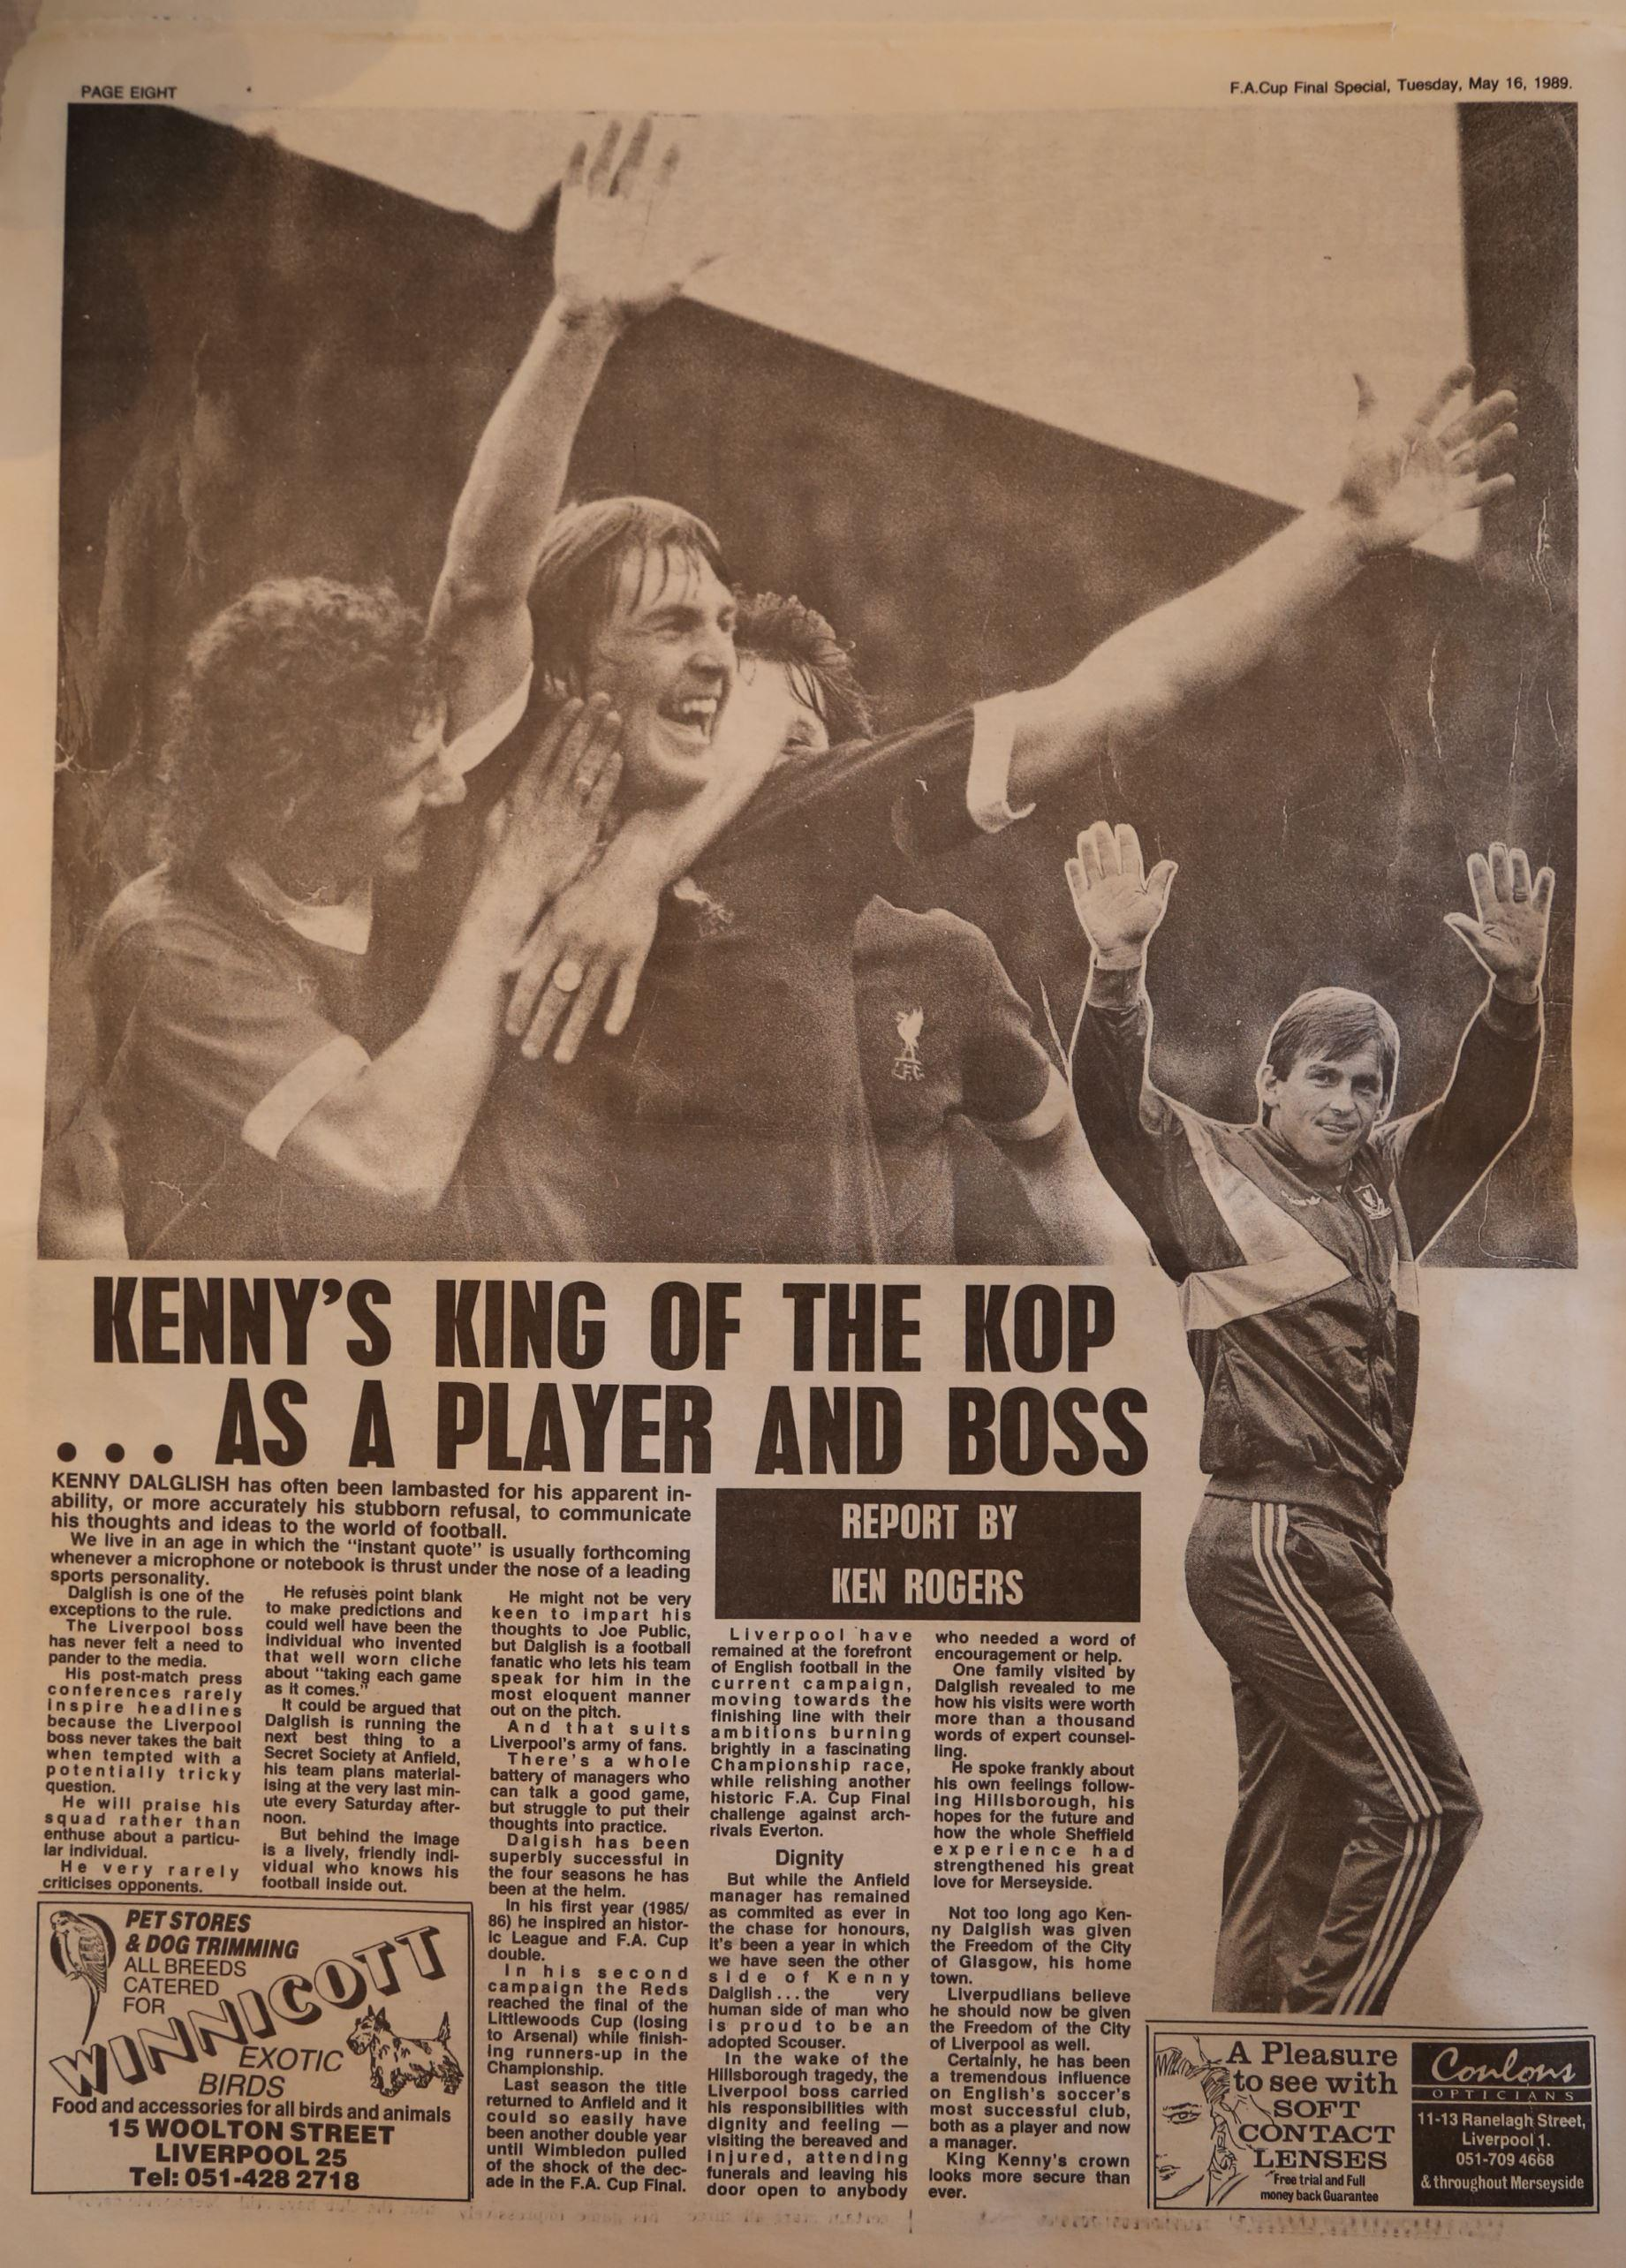 Kenny's king of the Kop! - 16 May 1989